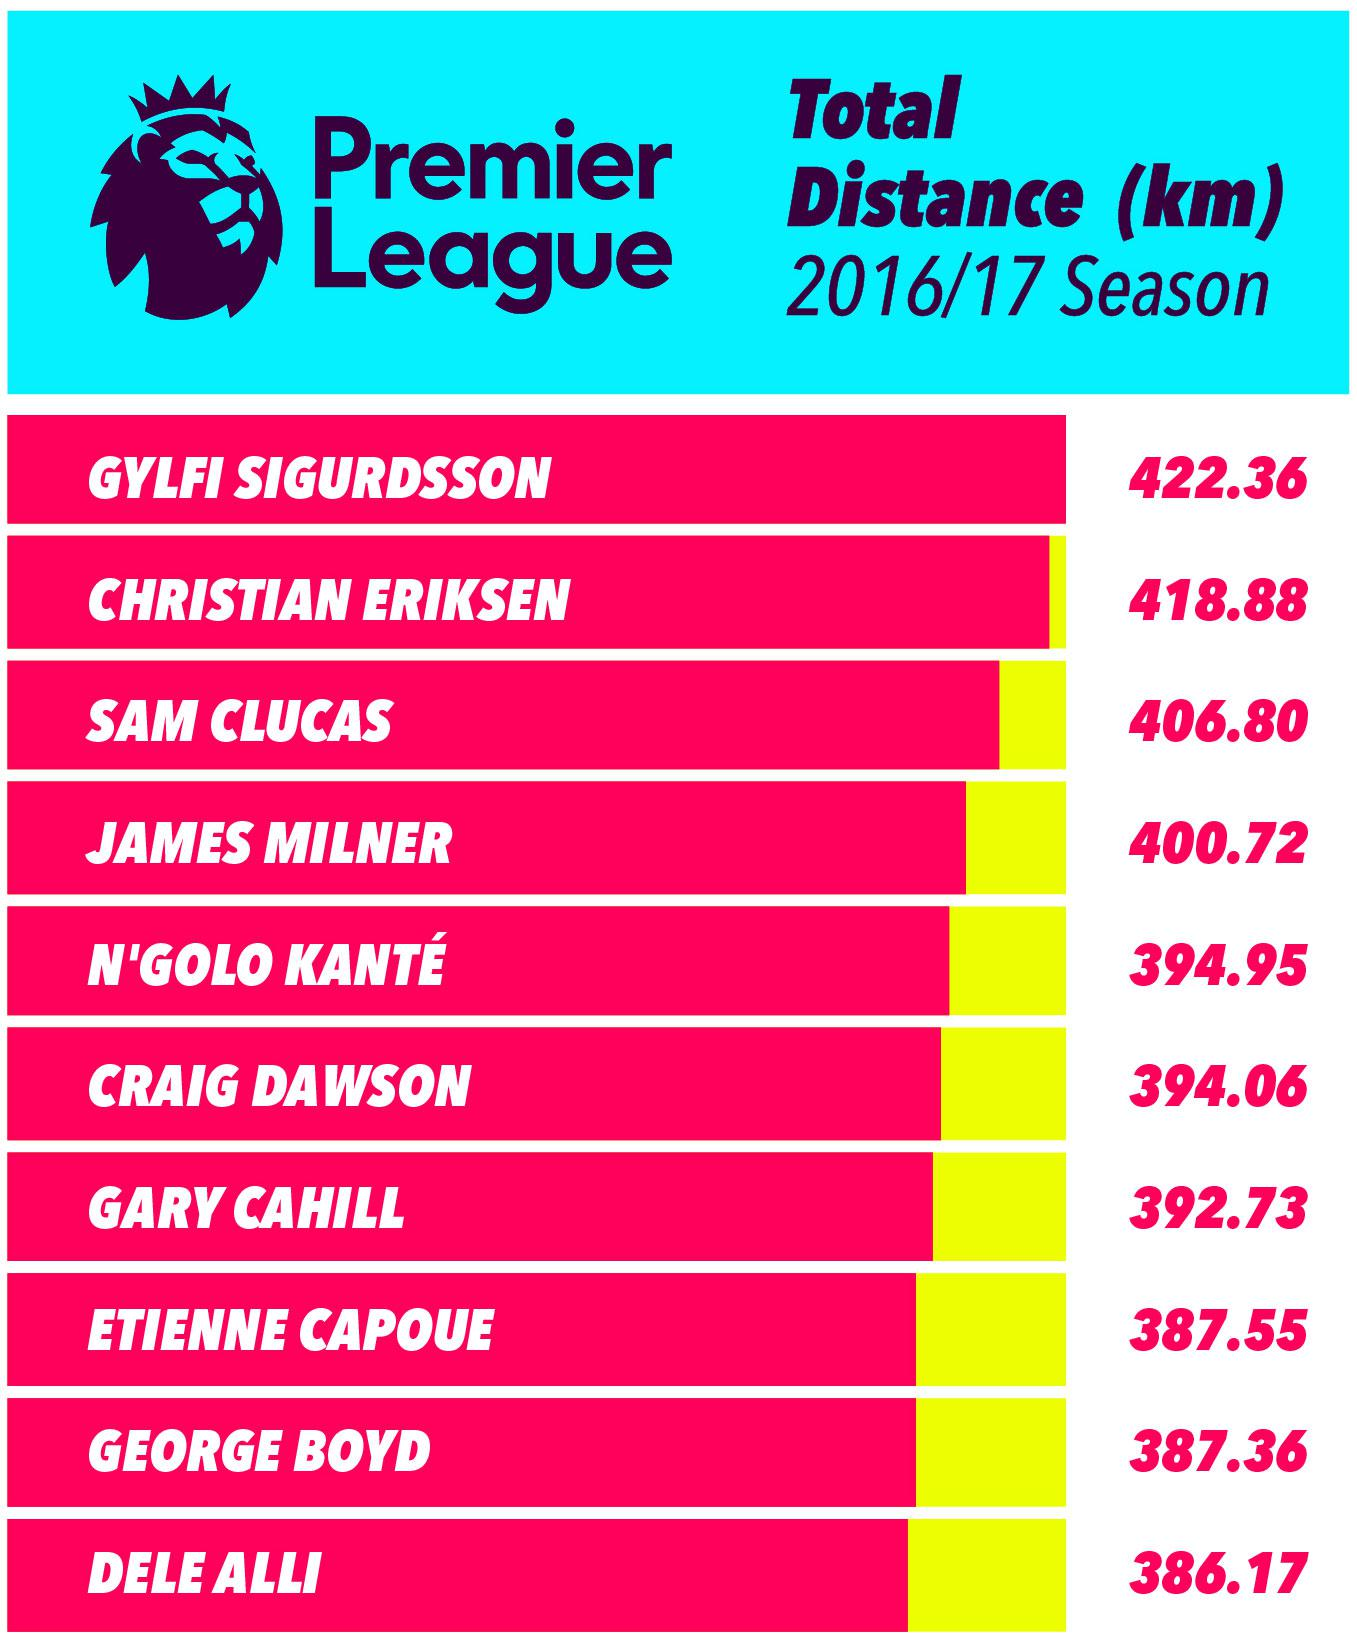 Swansea's Gylfi Sigurdsson and Spurs' Christian Eriksen top the list, while Hull midfielder Sam Clucas proves he's got a very good engine